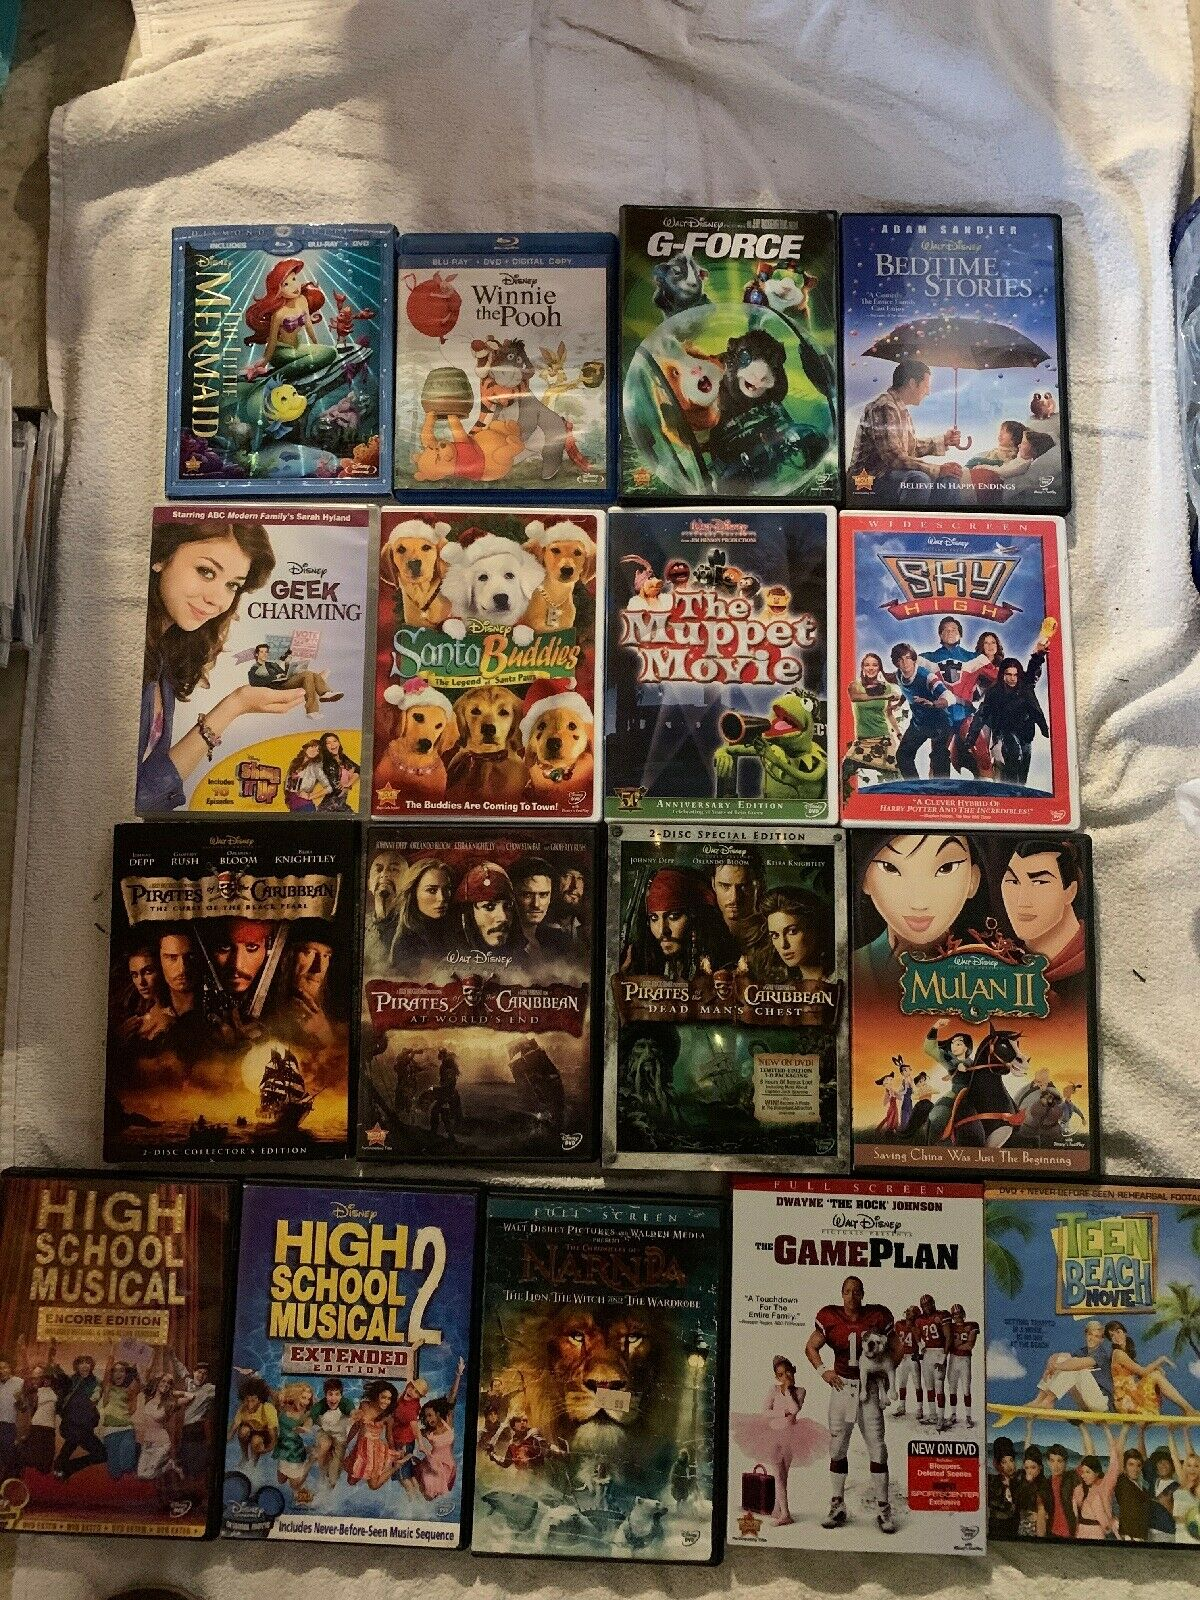 100 DVD Children S Movies Wholesale Lot DVDs for sale online | eBay